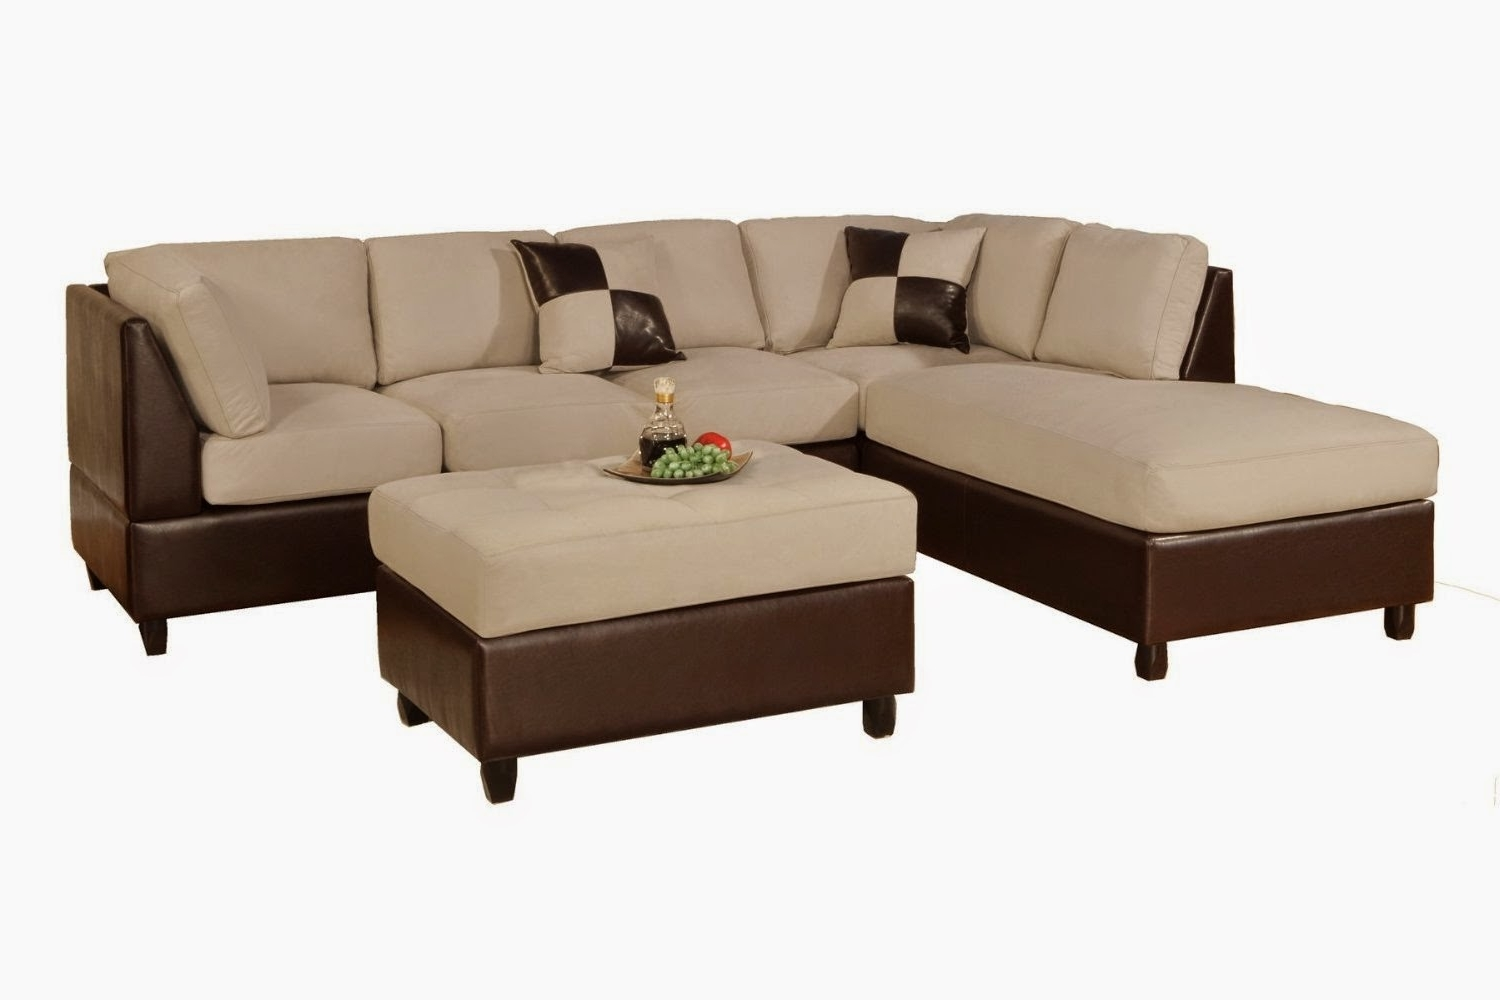 Famous Brown Faux Leather L Shaped Sectional Couch With Left Chaise Pertaining To Leather L Shaped Sectional Sofas (View 5 of 20)